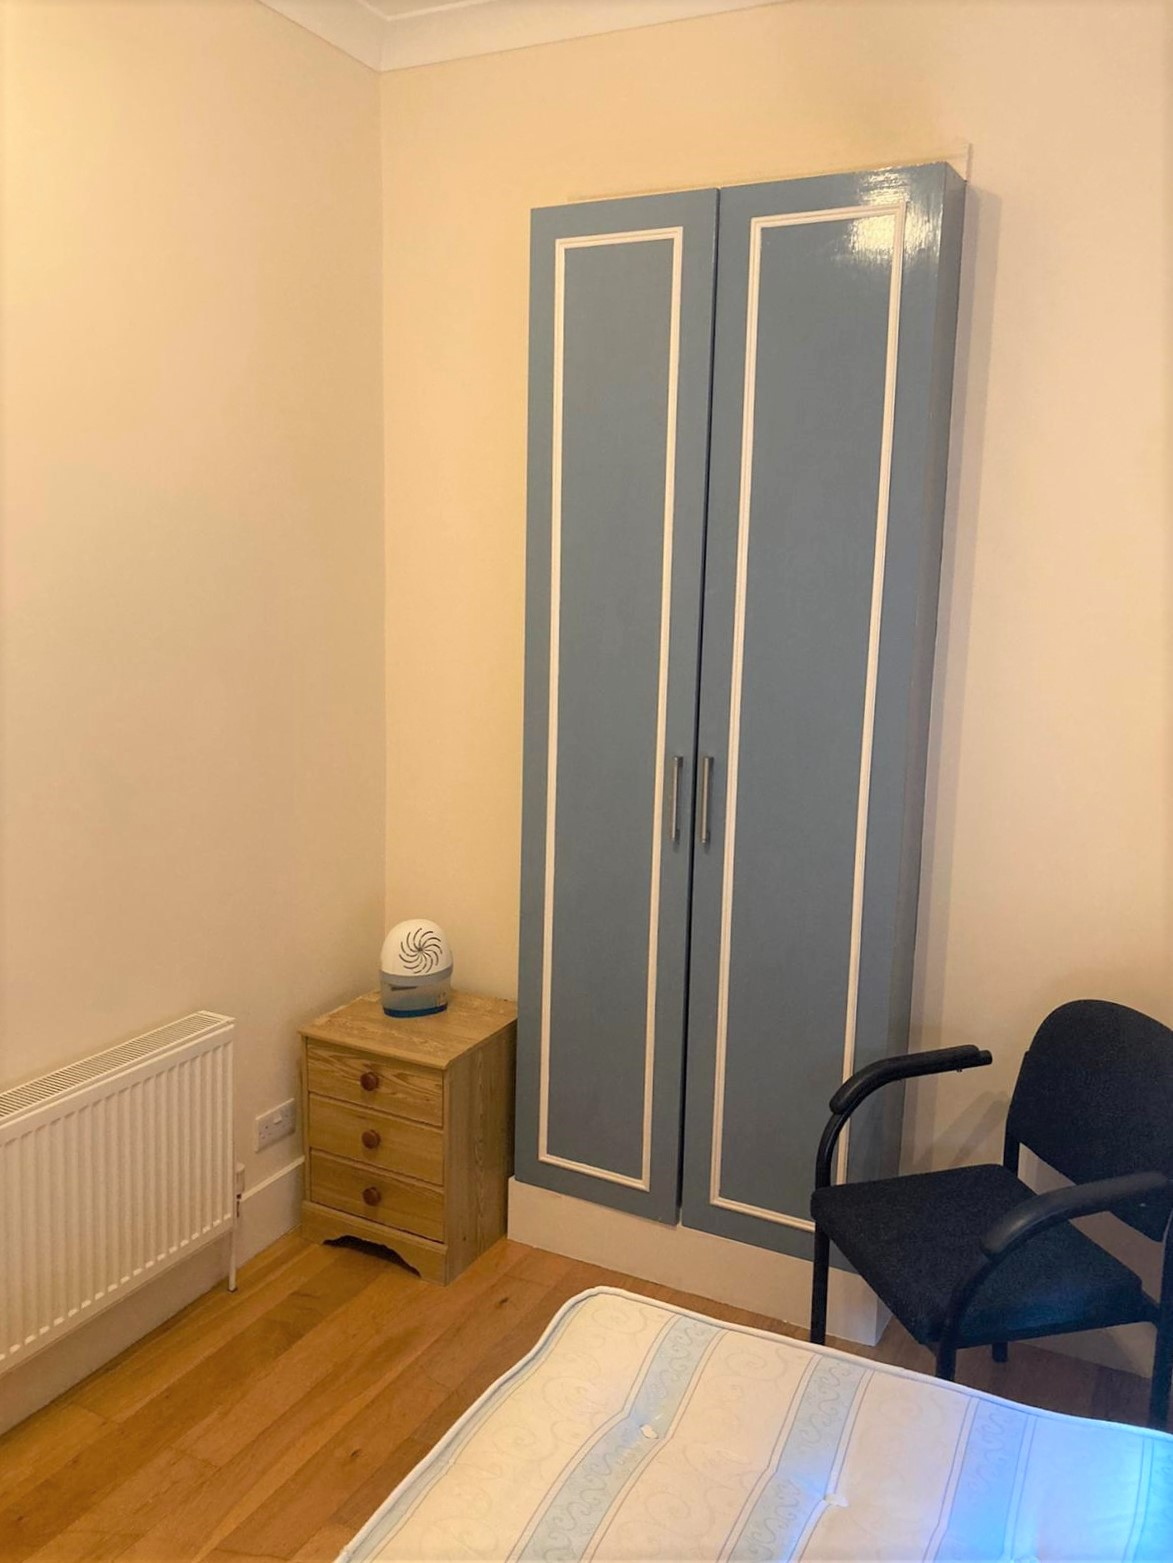 1 bed flat to rent in North End Road, West Kensington, Flat 1